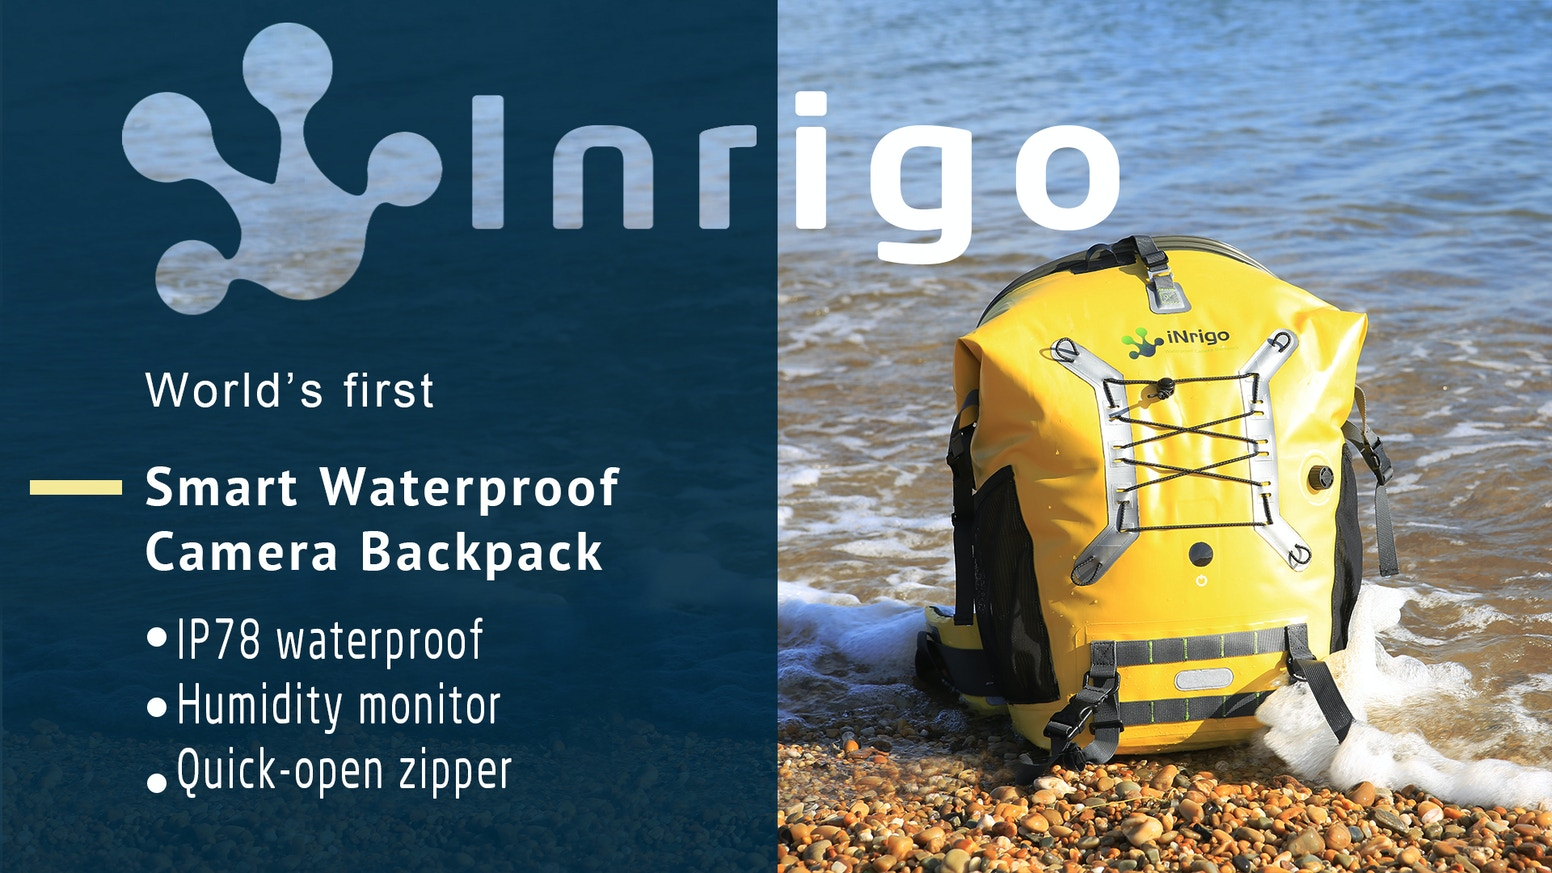 The first moisture monitoring camera backpack to protect your gear, with a quick-open zipper so you won't miss a shot.